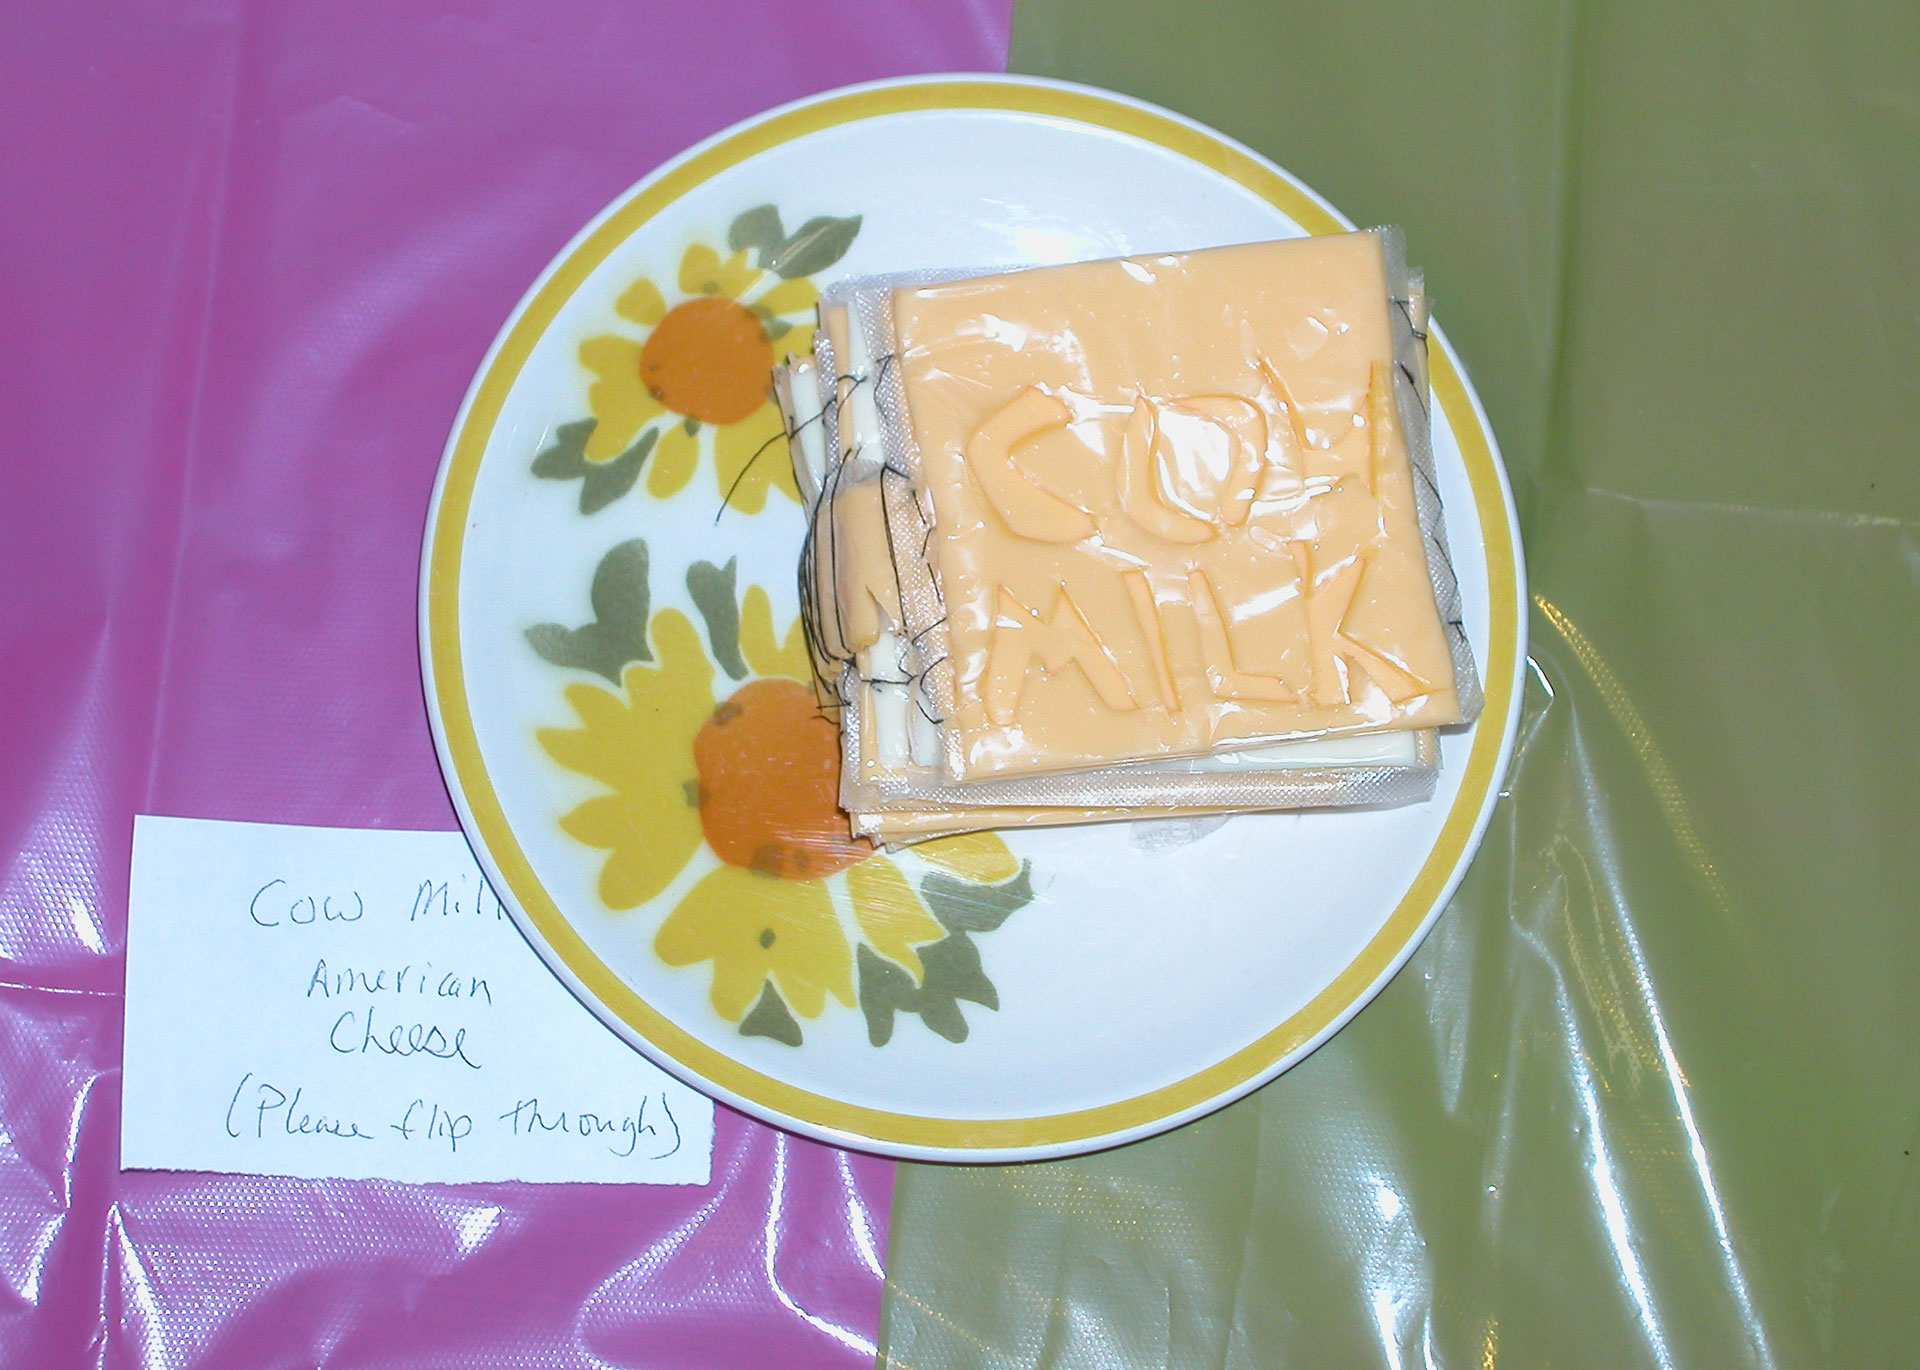 """Cow Milk"" by Katie Platte; 2007 Edible Book Festivall entry"